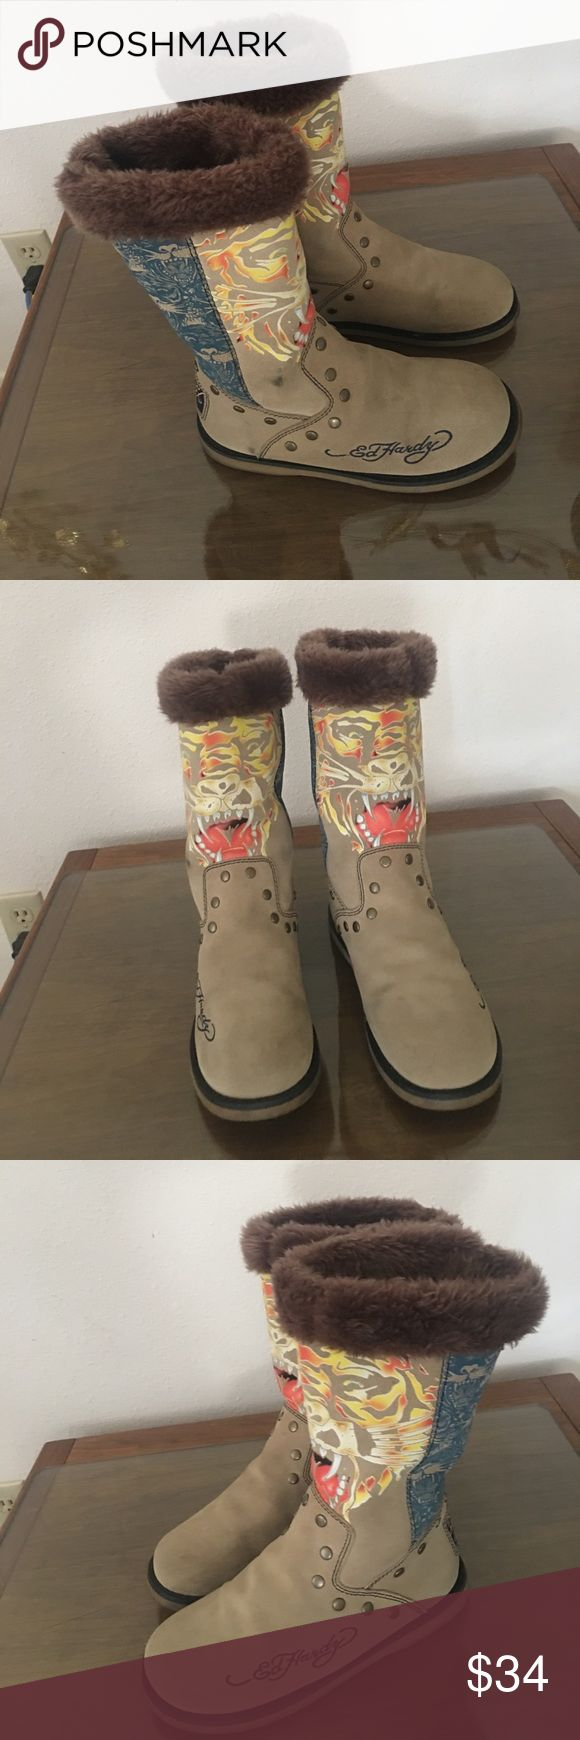 Don Ed Hardy Boots Don ED Hardy Boot's With Lions on front of Cream suede leather, insides are brown fur very soft, Size 39, signs of wear their is a few marks on both boots otherwise in Good Condition, Very comfortable and Cute. Don Ed Hardy Shoes Winter & Rain Boots